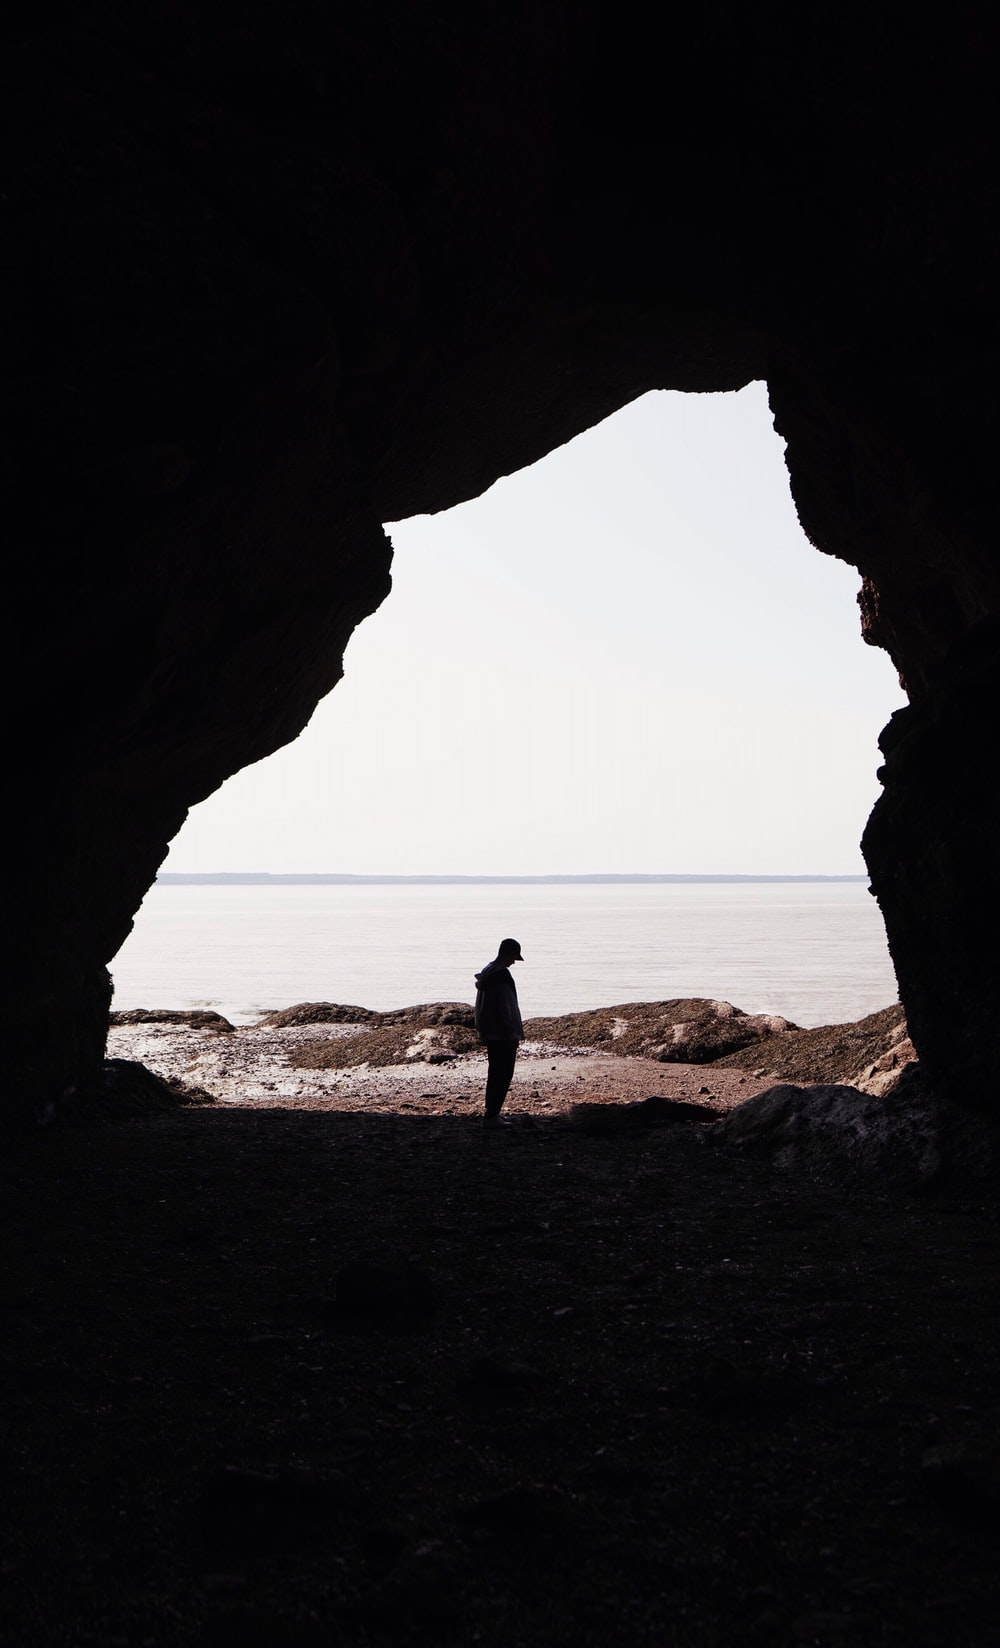 silhouette of person standing on cave entrance across horizon